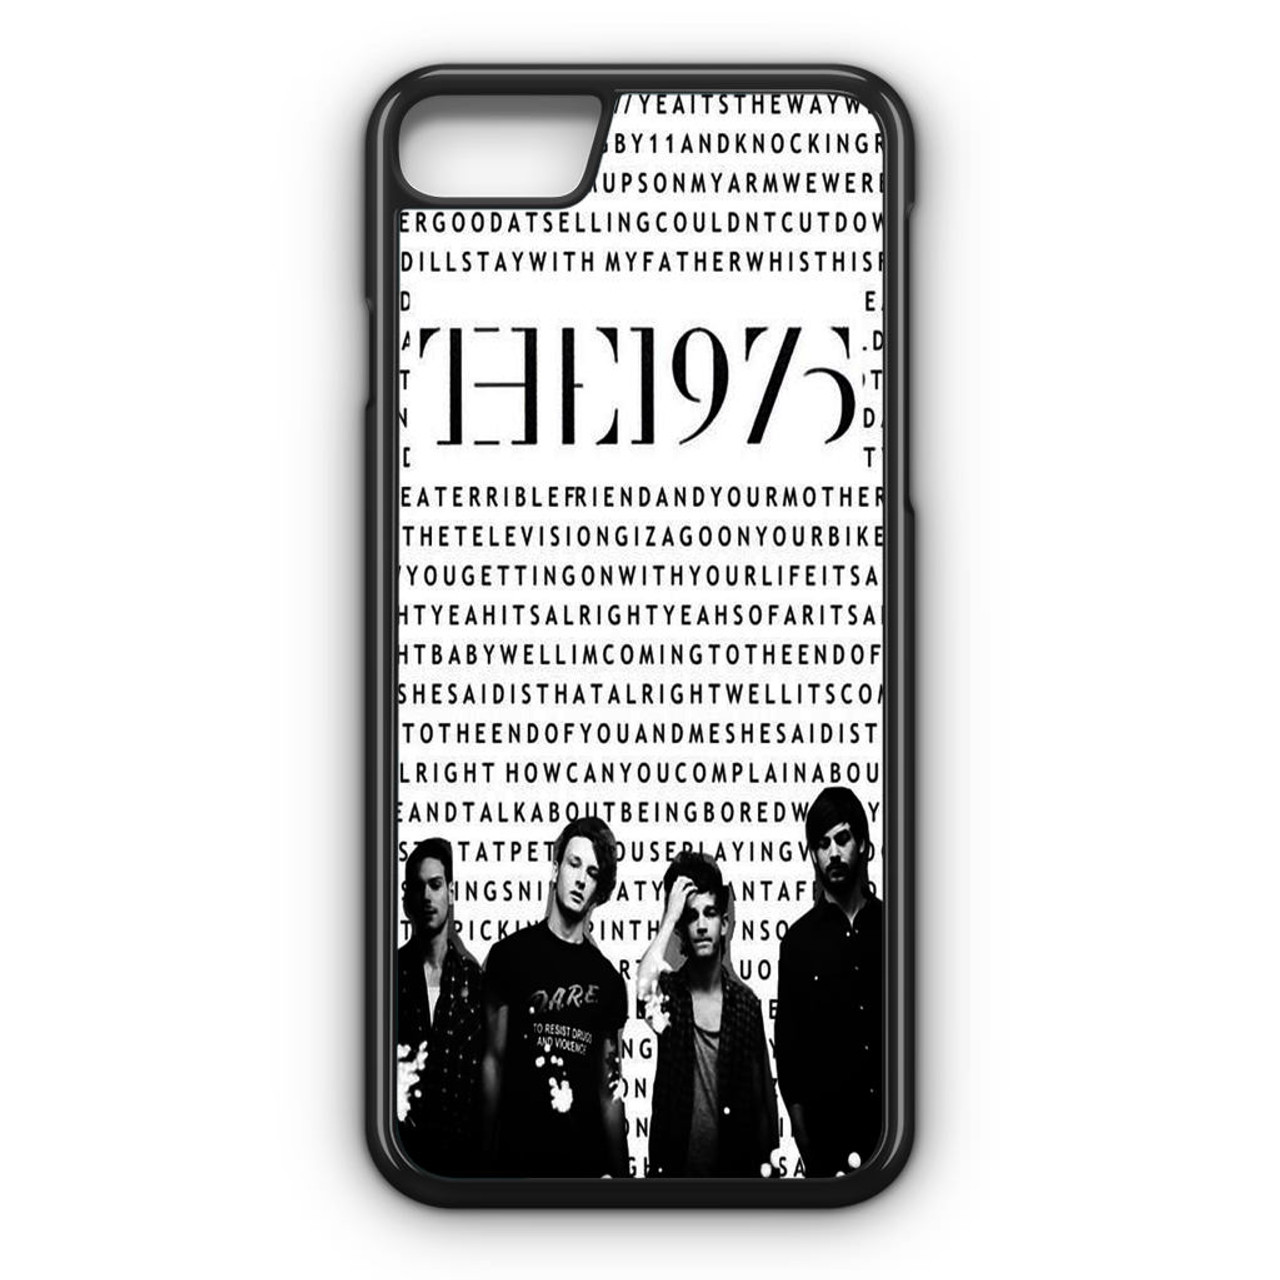 1975 iphone 7 case